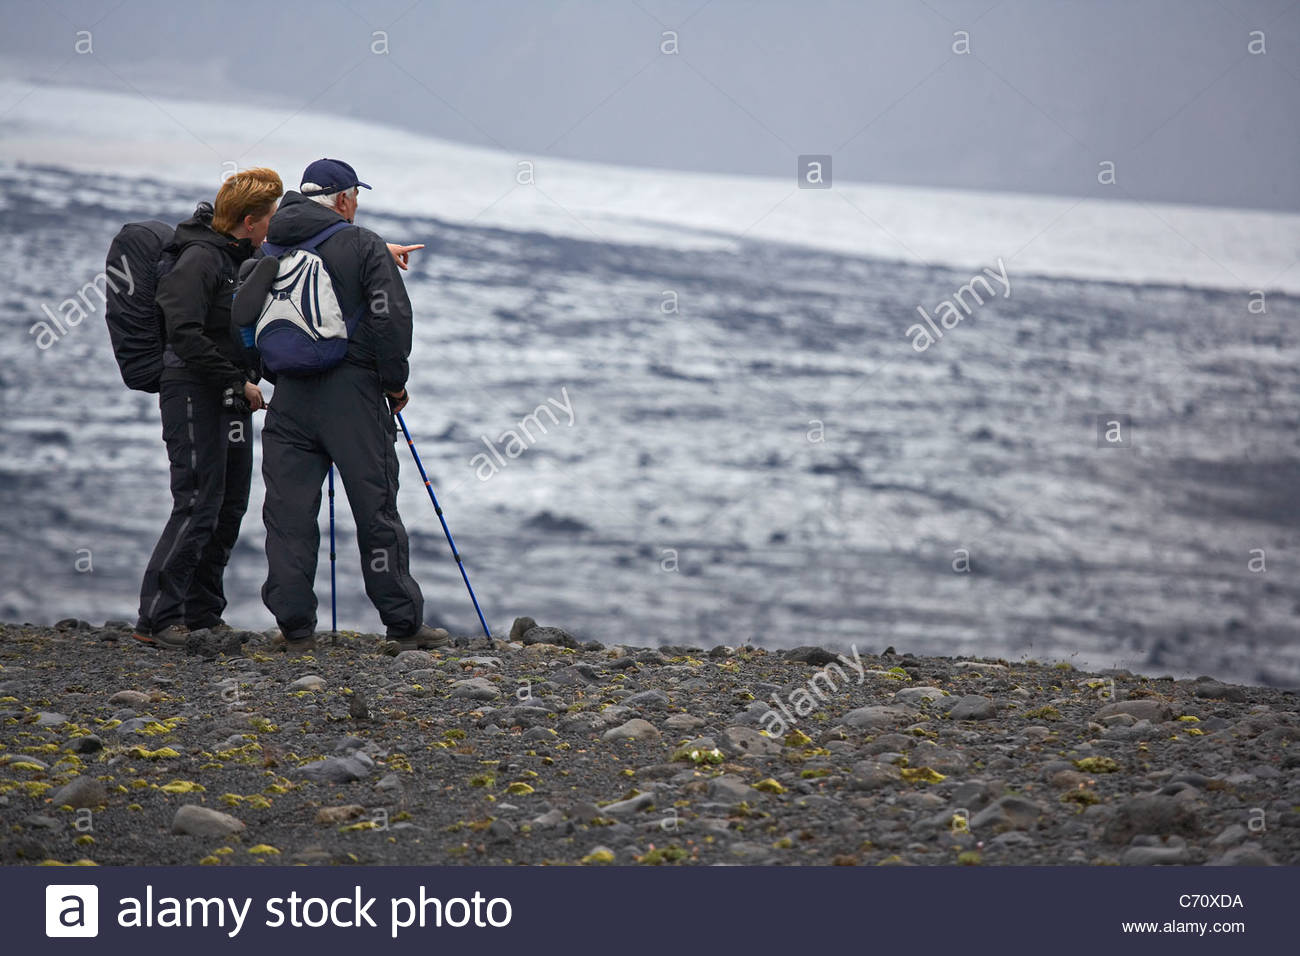 Hikers overlooking snowy landscape Stock Photo